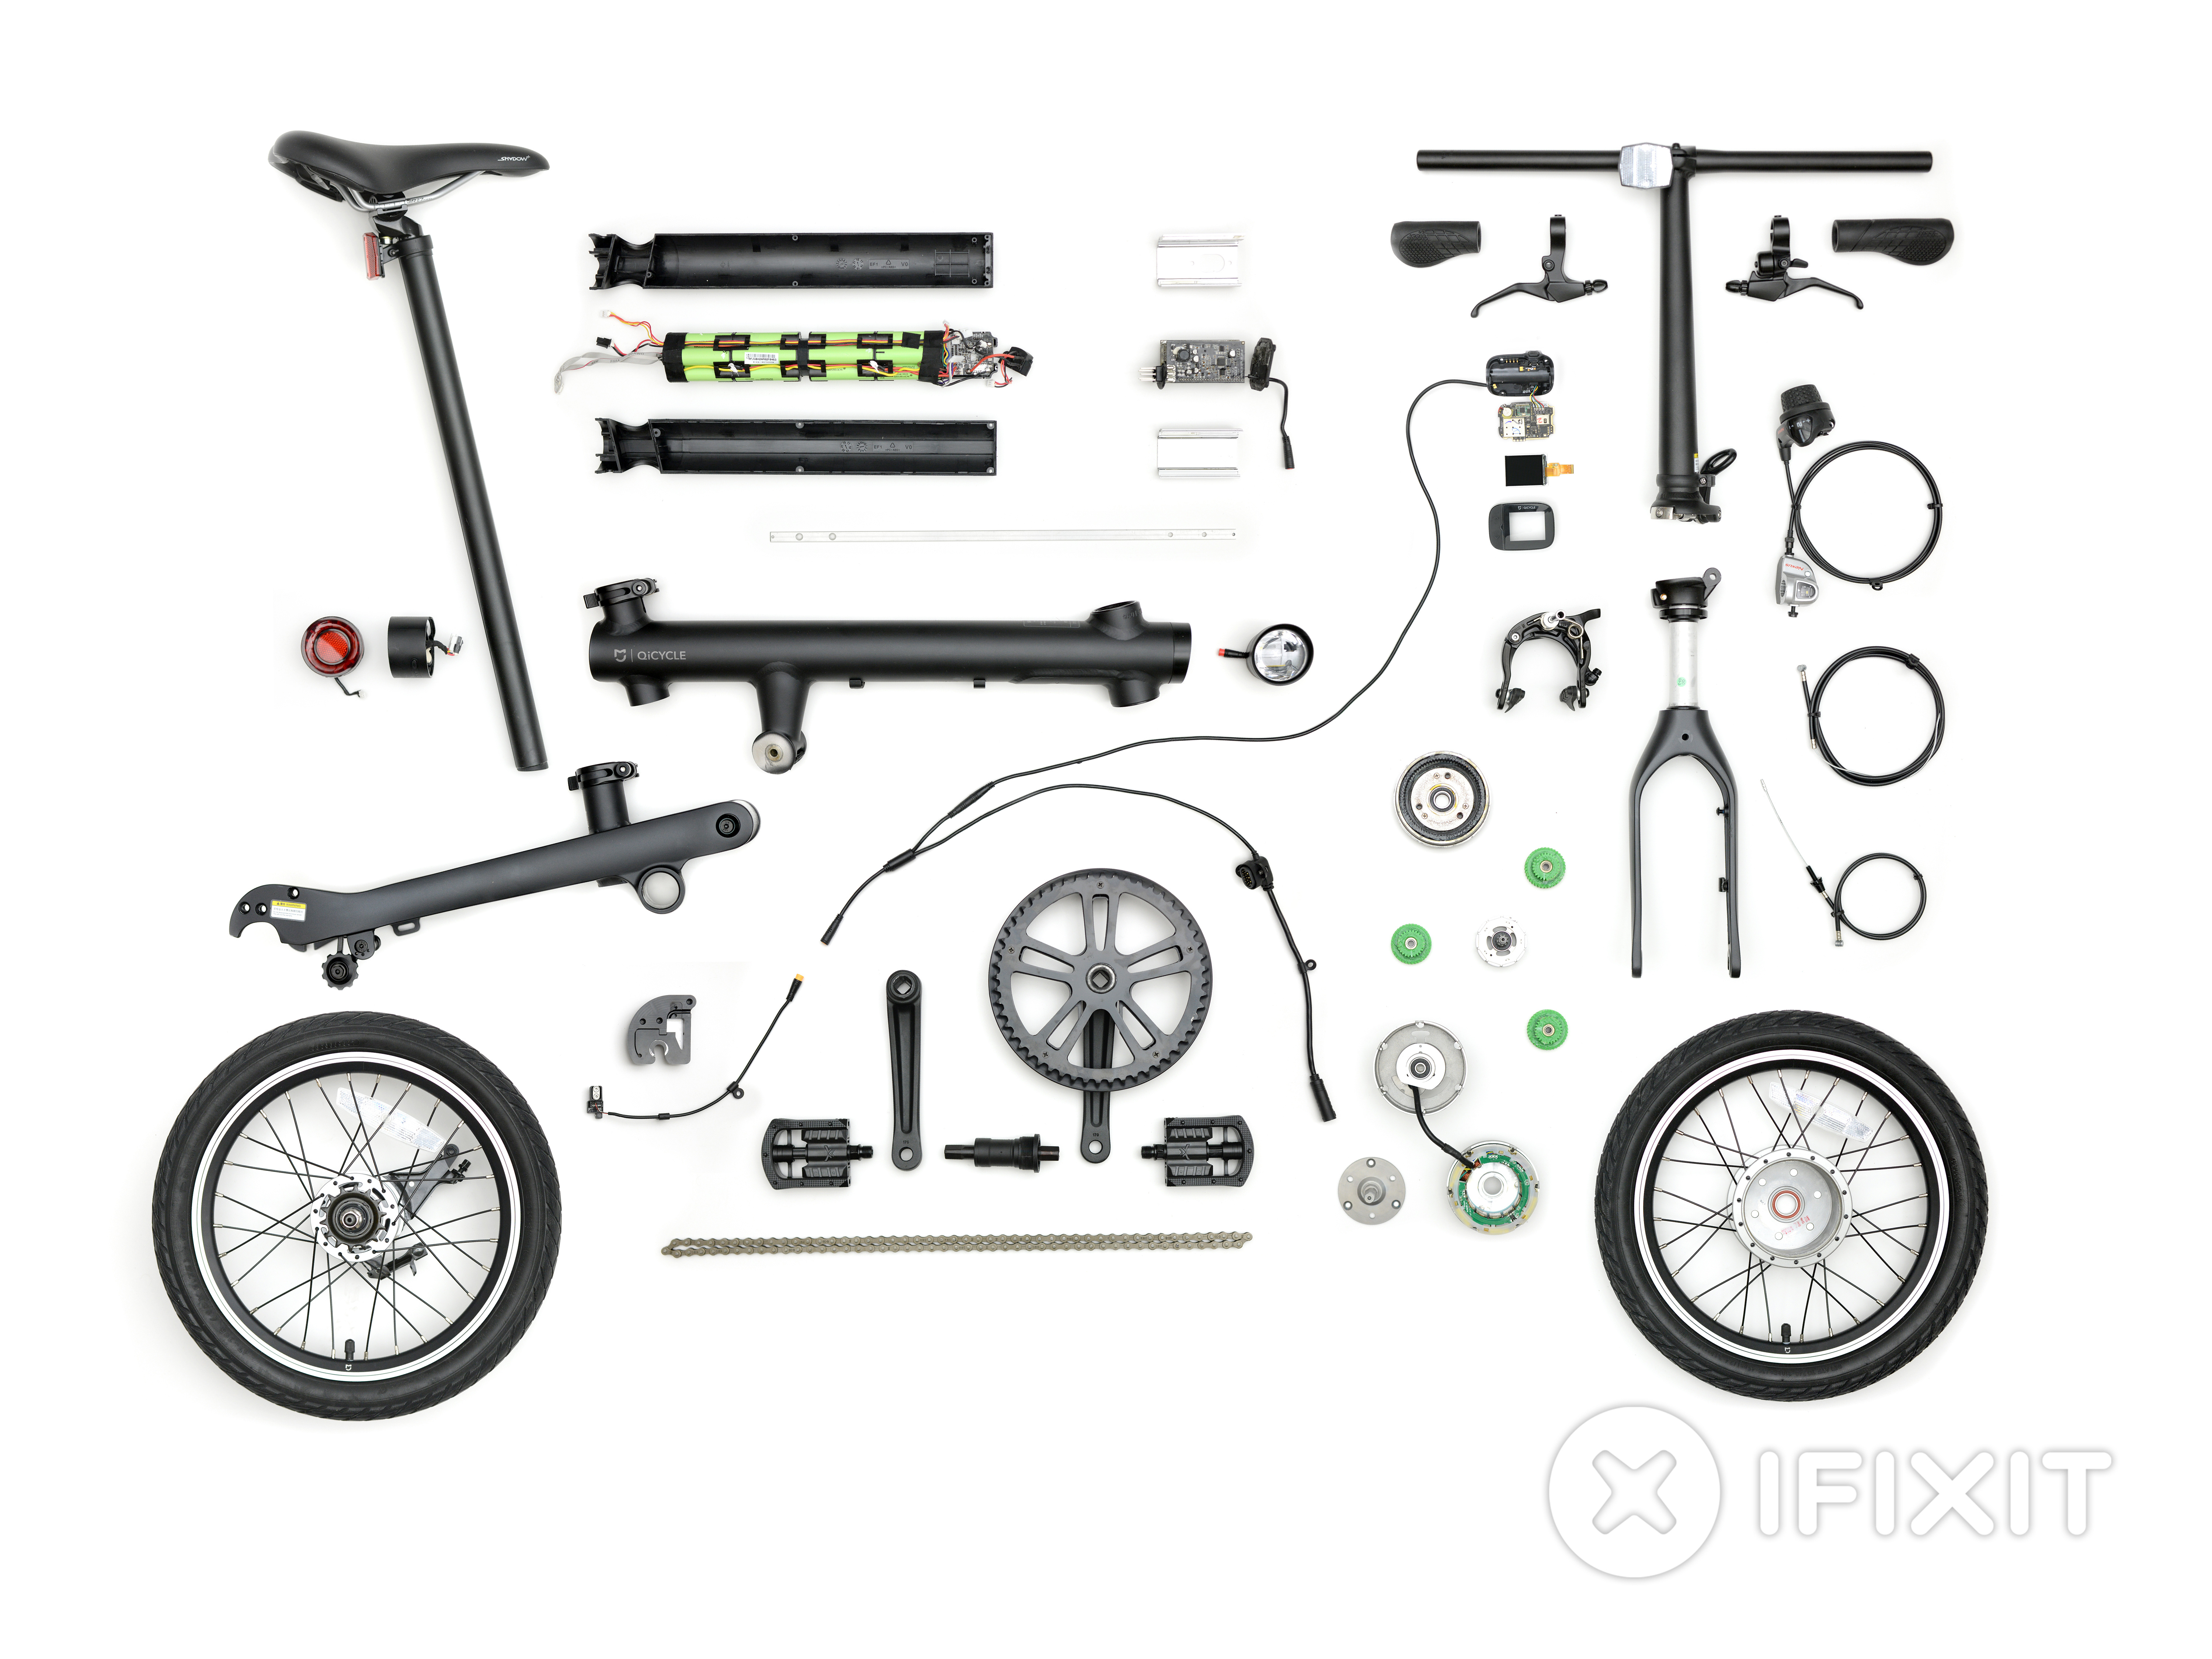 Xiaomi Mijia Qicycle Folding Electric Bike Teardown Ifixit Motorcycle Battery Wiring Diagram